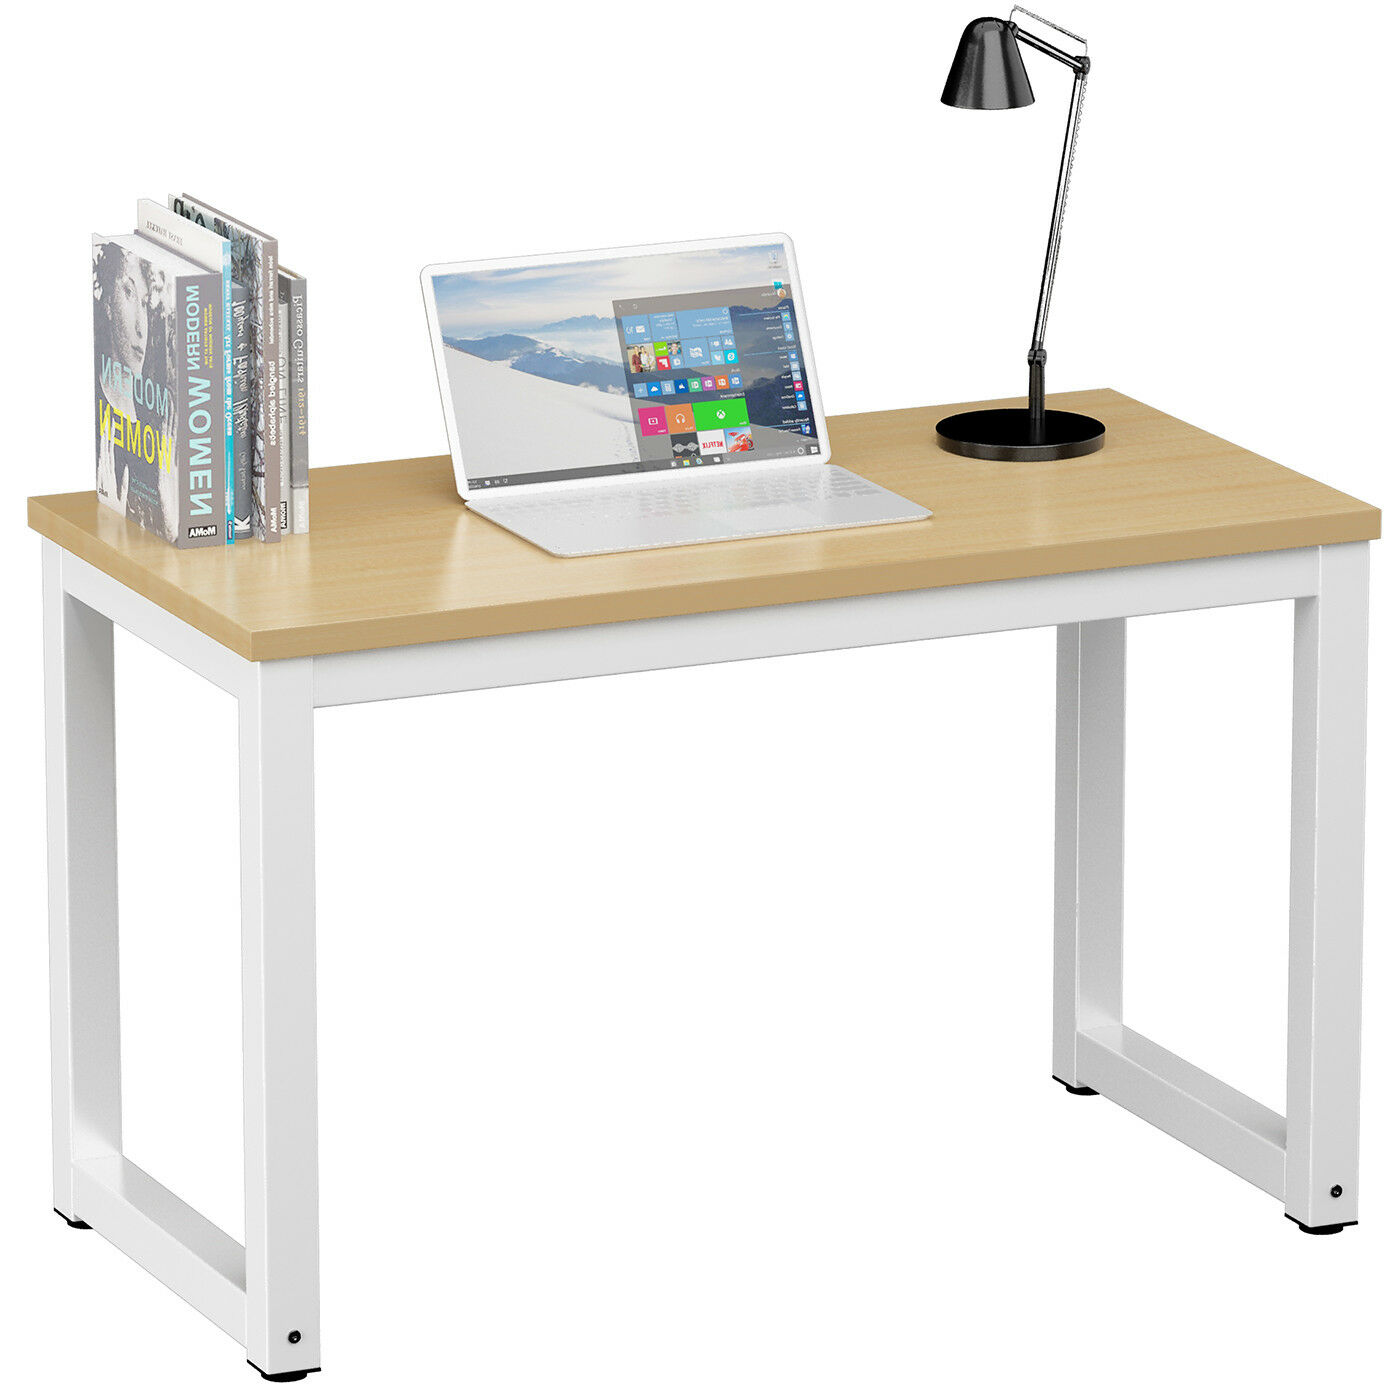 COMPUTER PC DESK Home Office Writing Table WorkStation Wooden Metal ...